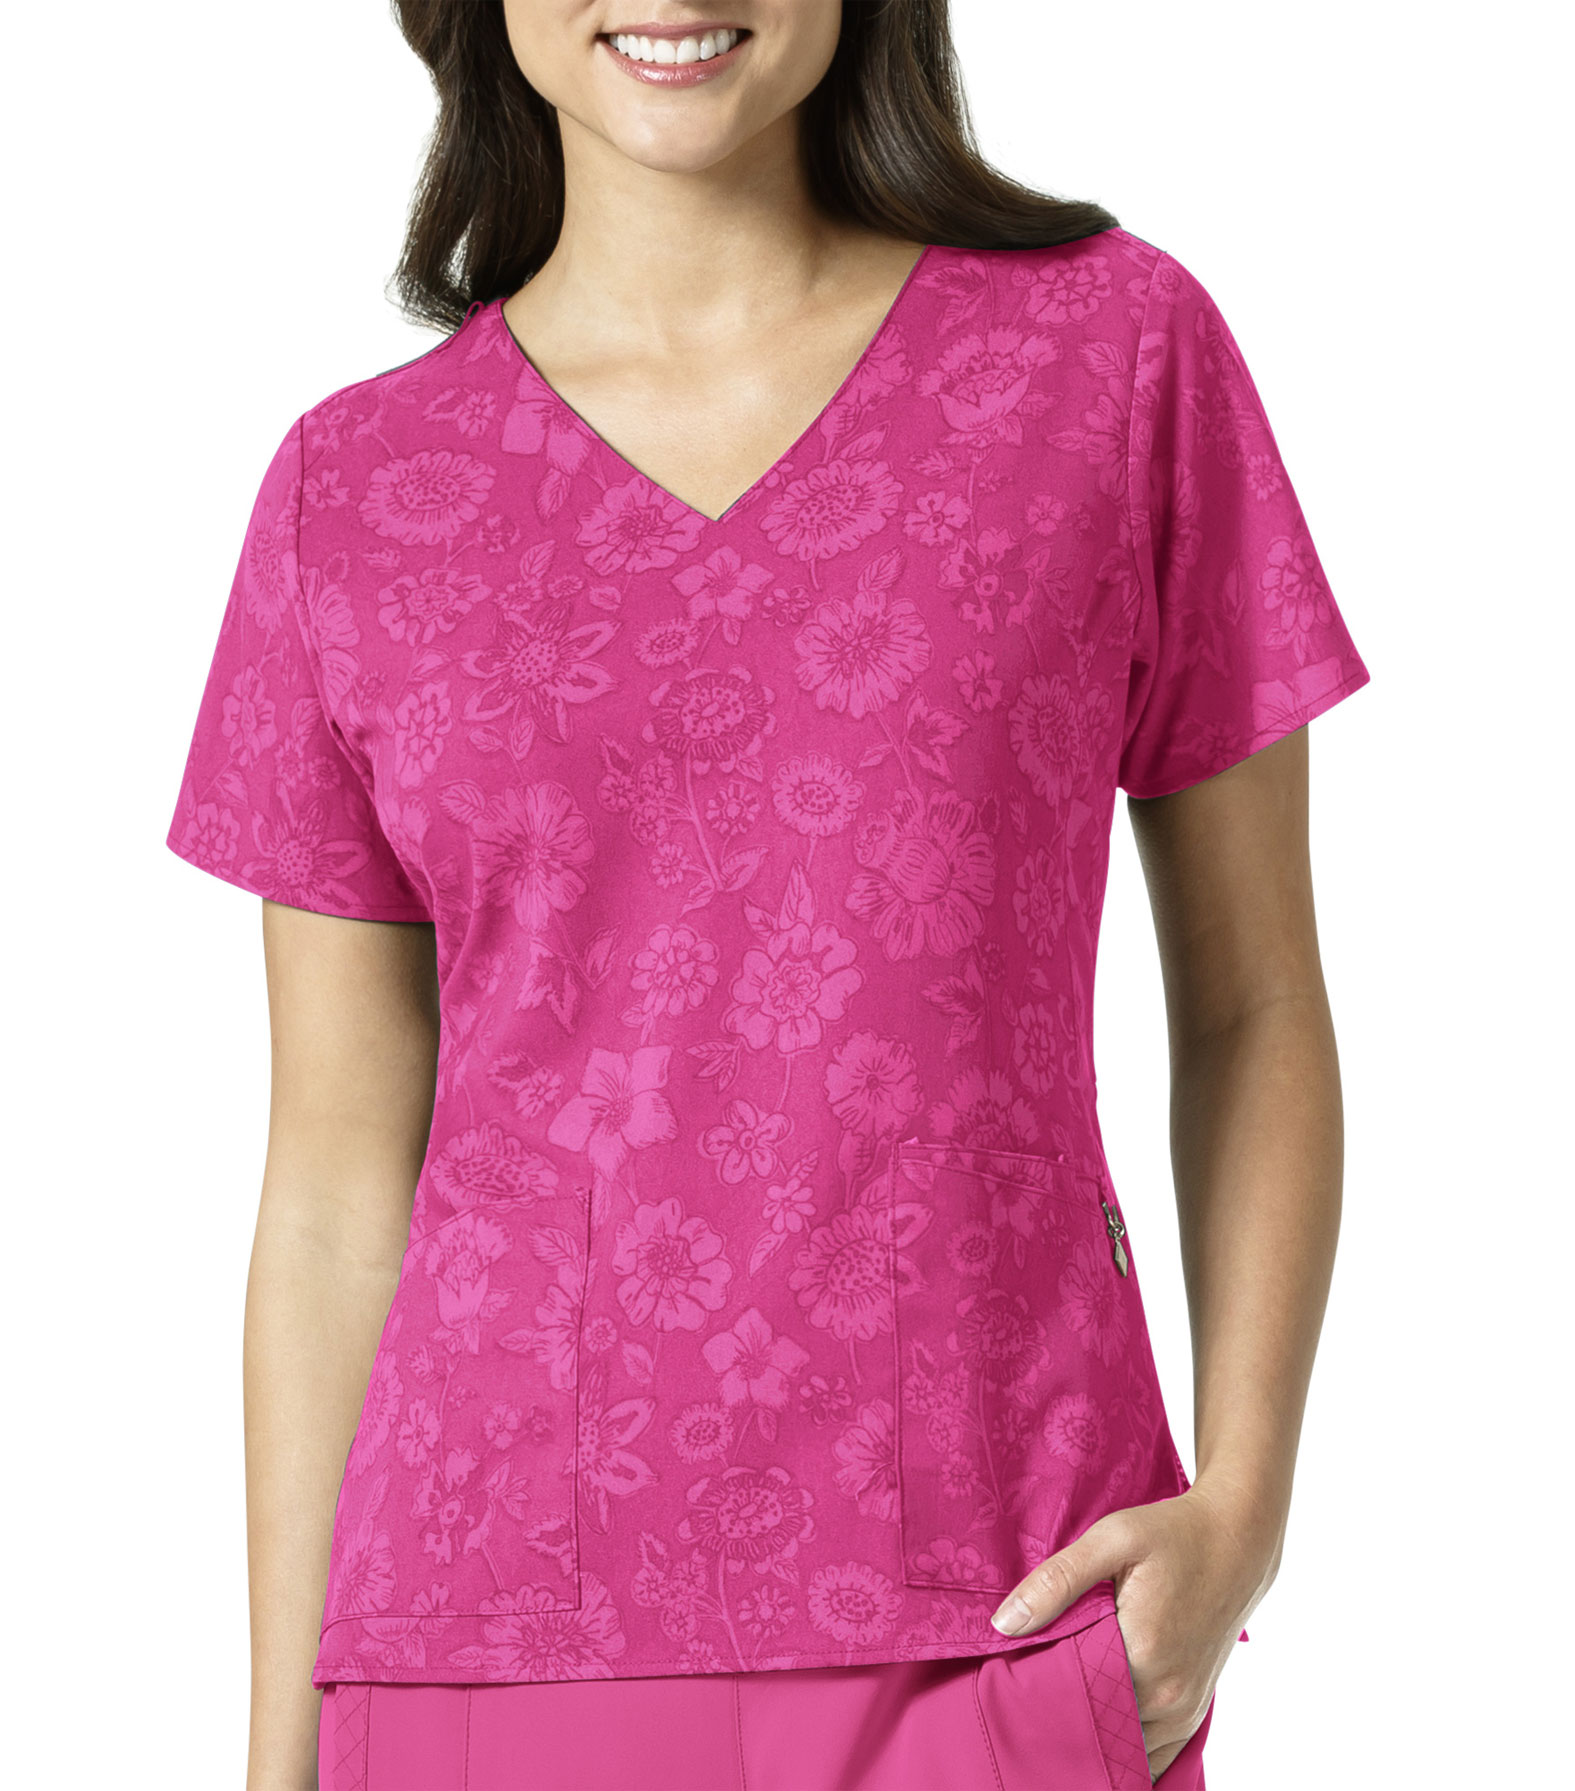 Pink Floral Ladies V-Neck Top by Vera Bradley